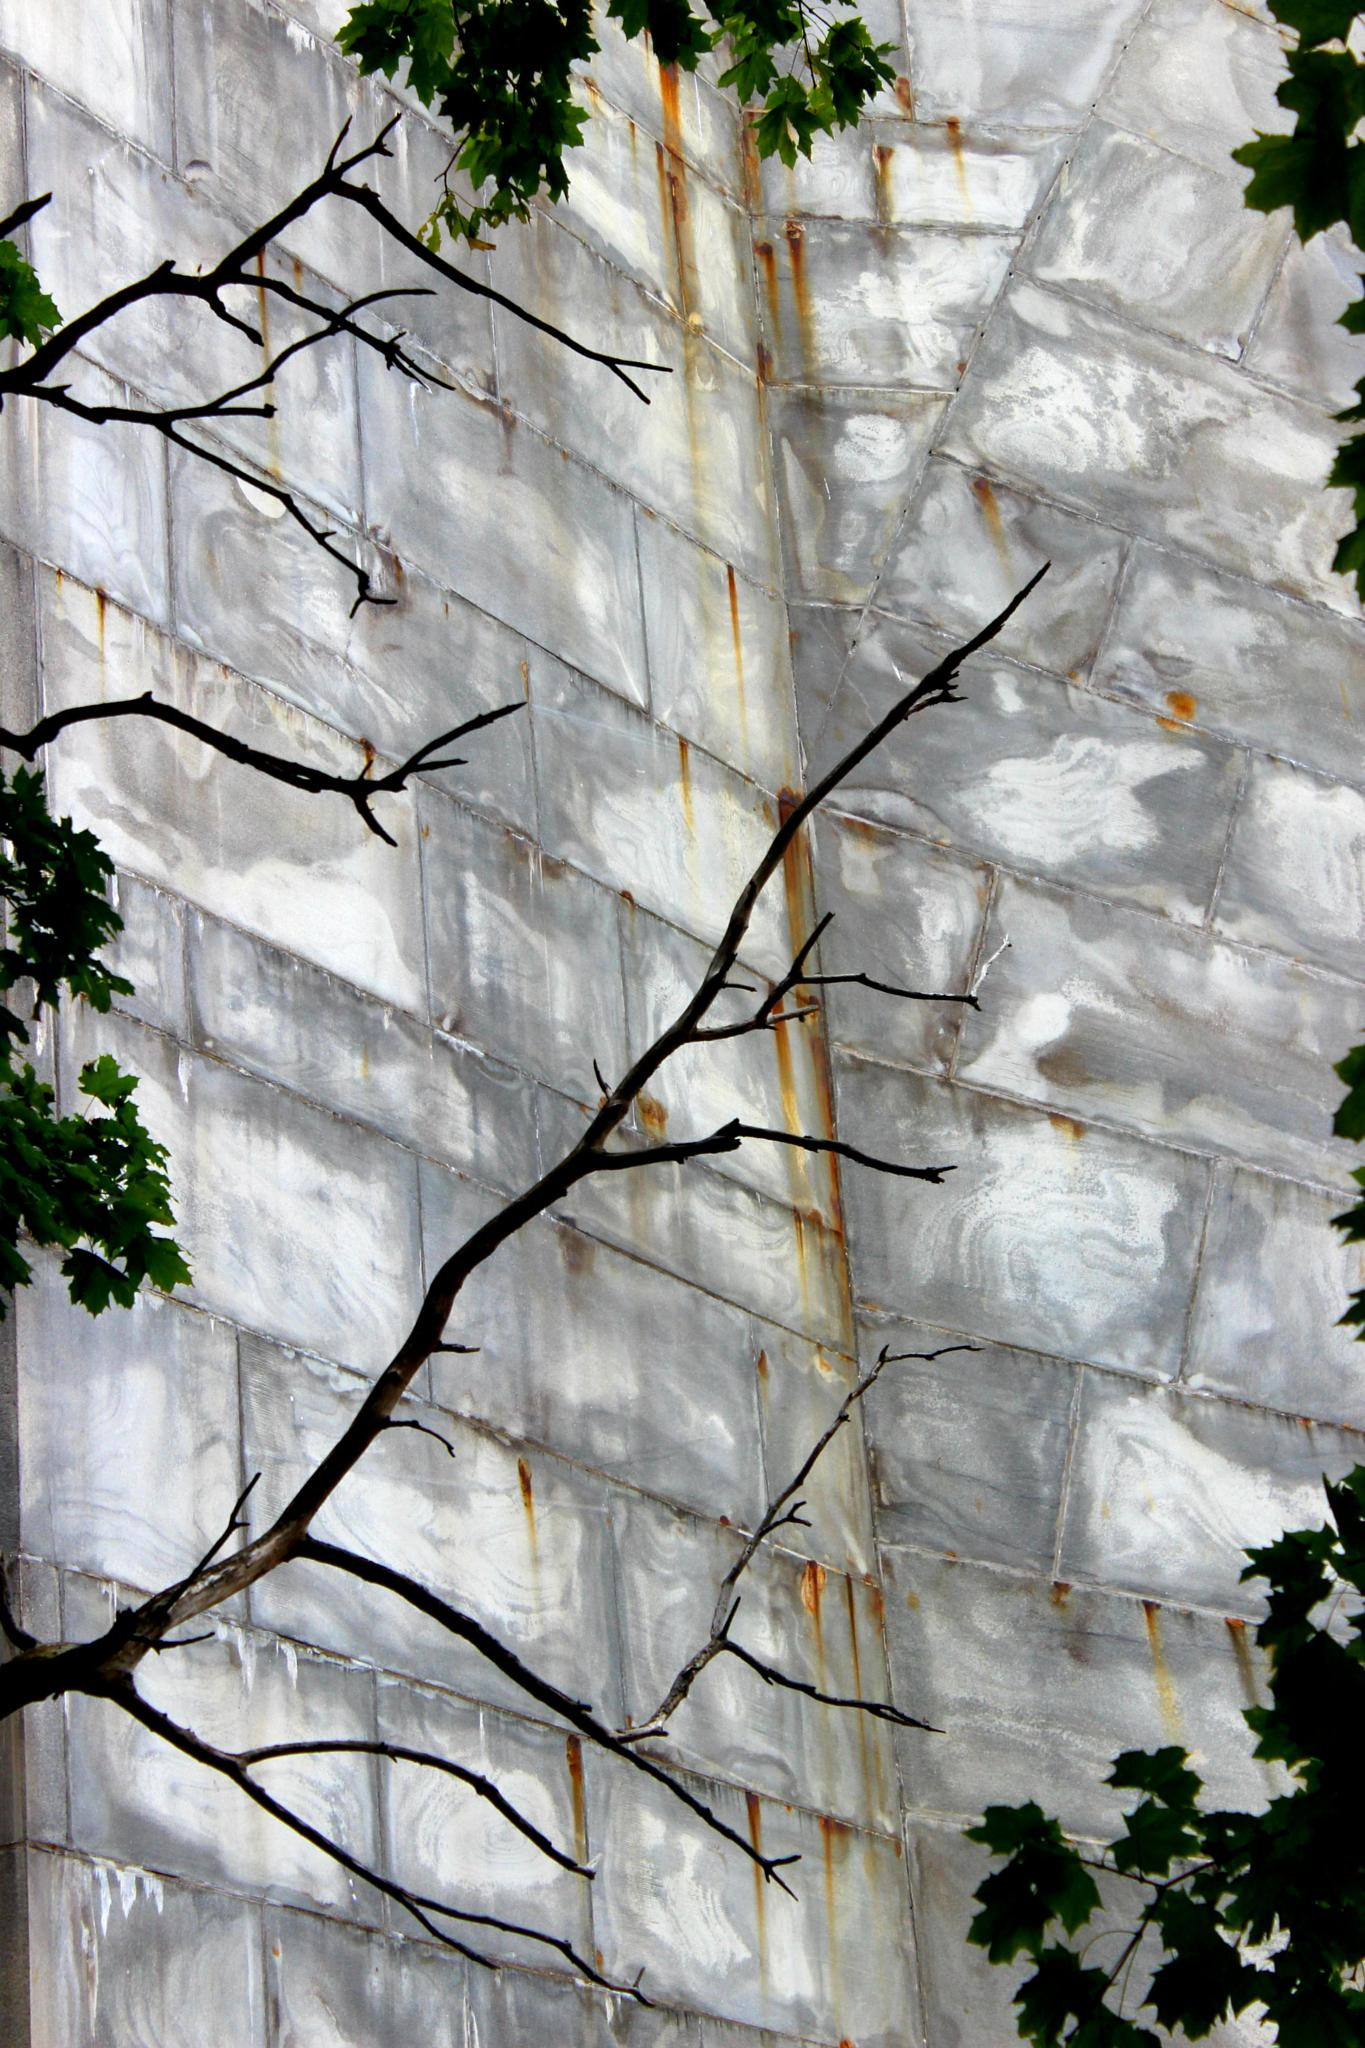 The Wall by lelhannon